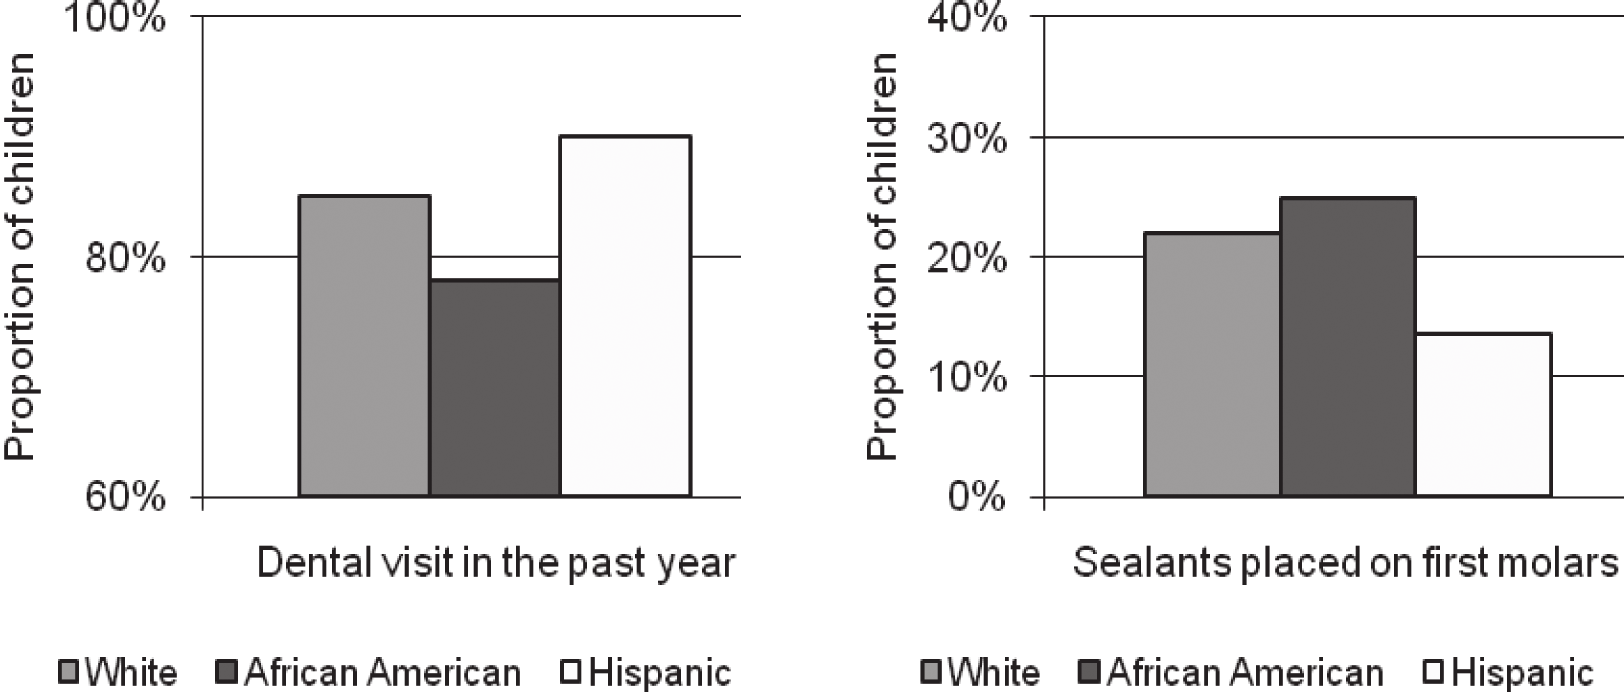 However, racial and ethnic disparities existed for annual dental utilization. (Figure 18) Barriers to accessing dental care were reported by 10.